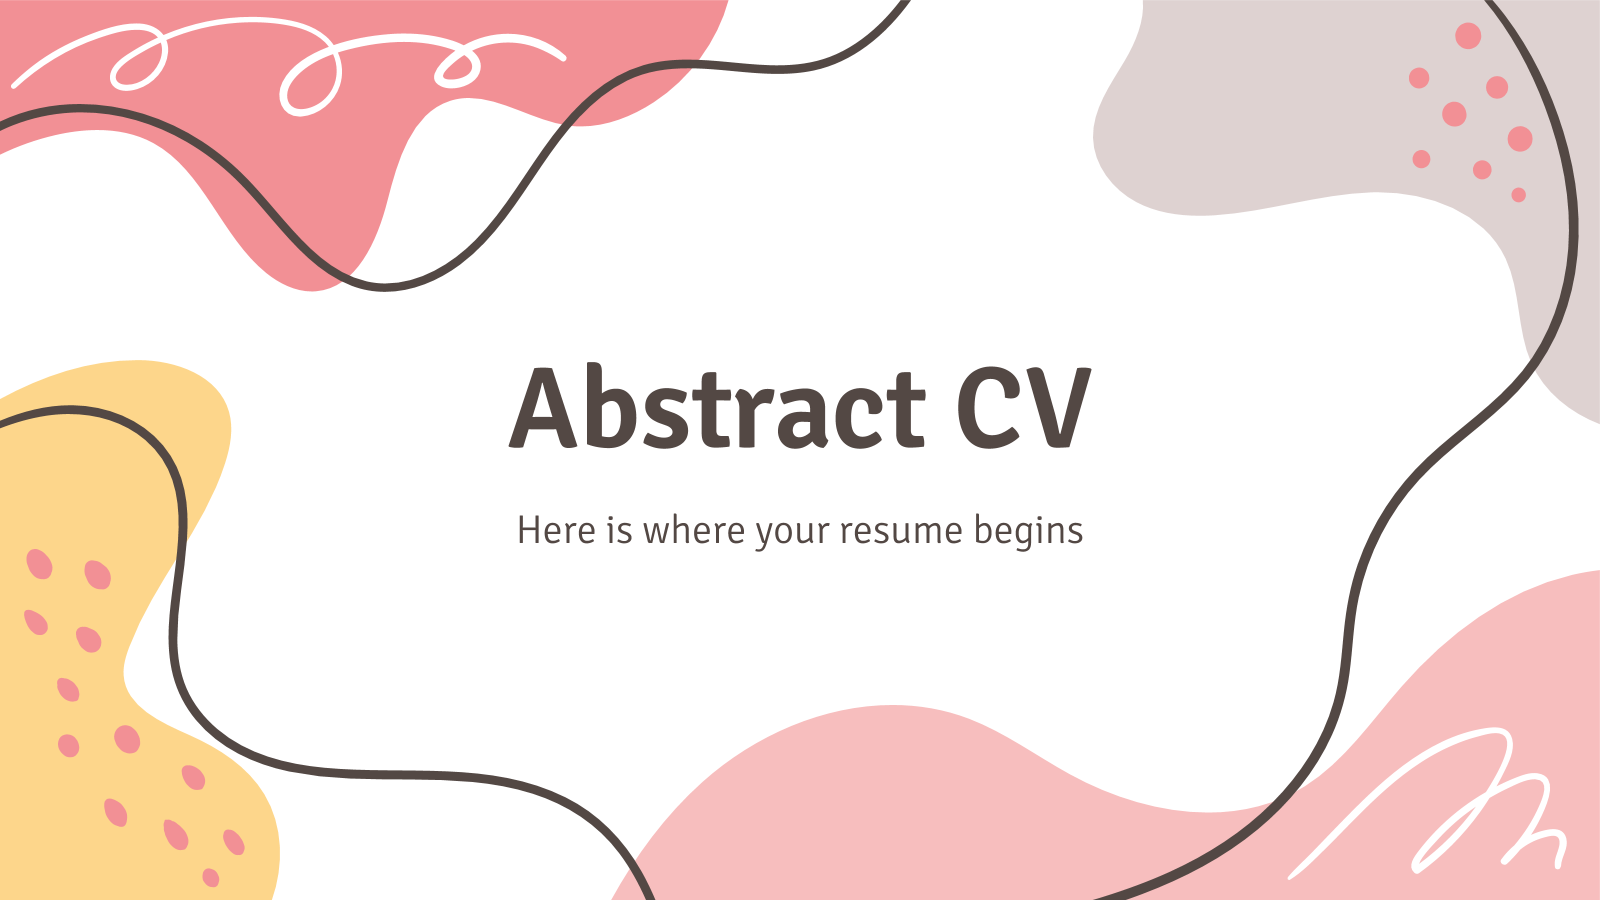 Abstract CV presentation template